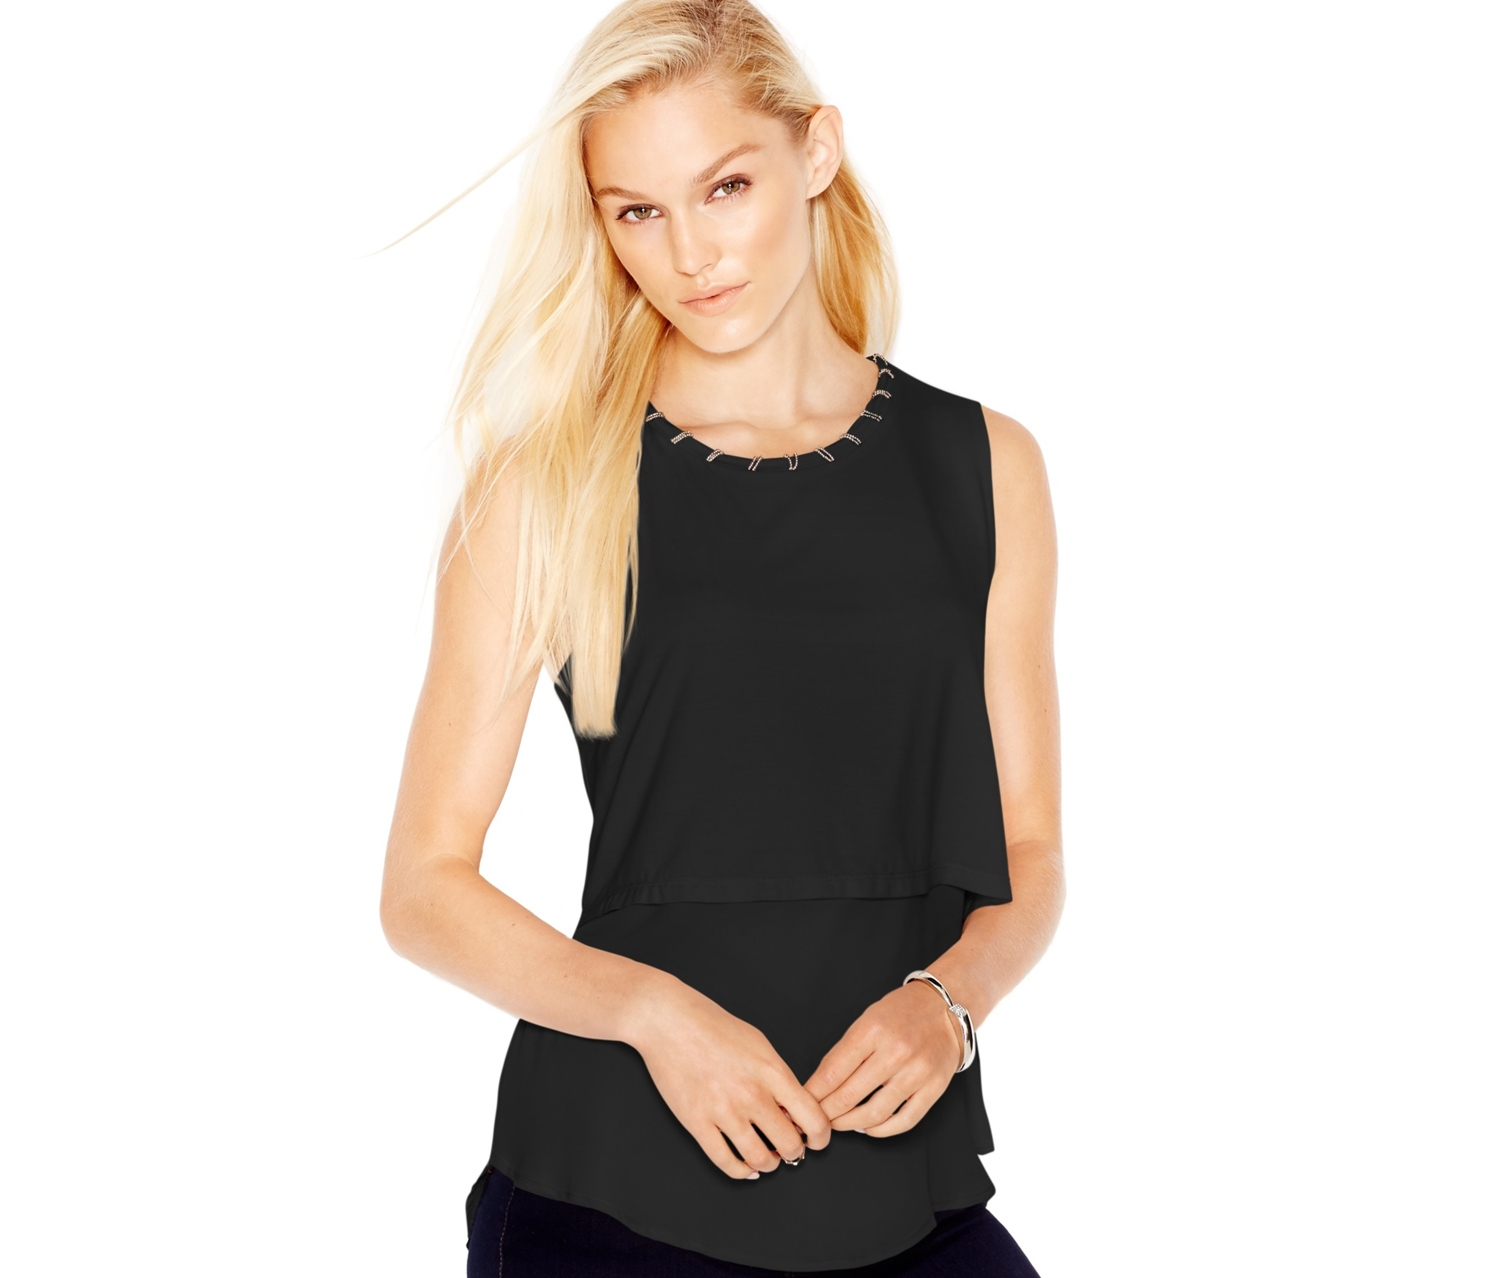 06843e9108 Bar III Embellished Layered Top,Deep Black - Brands For Less